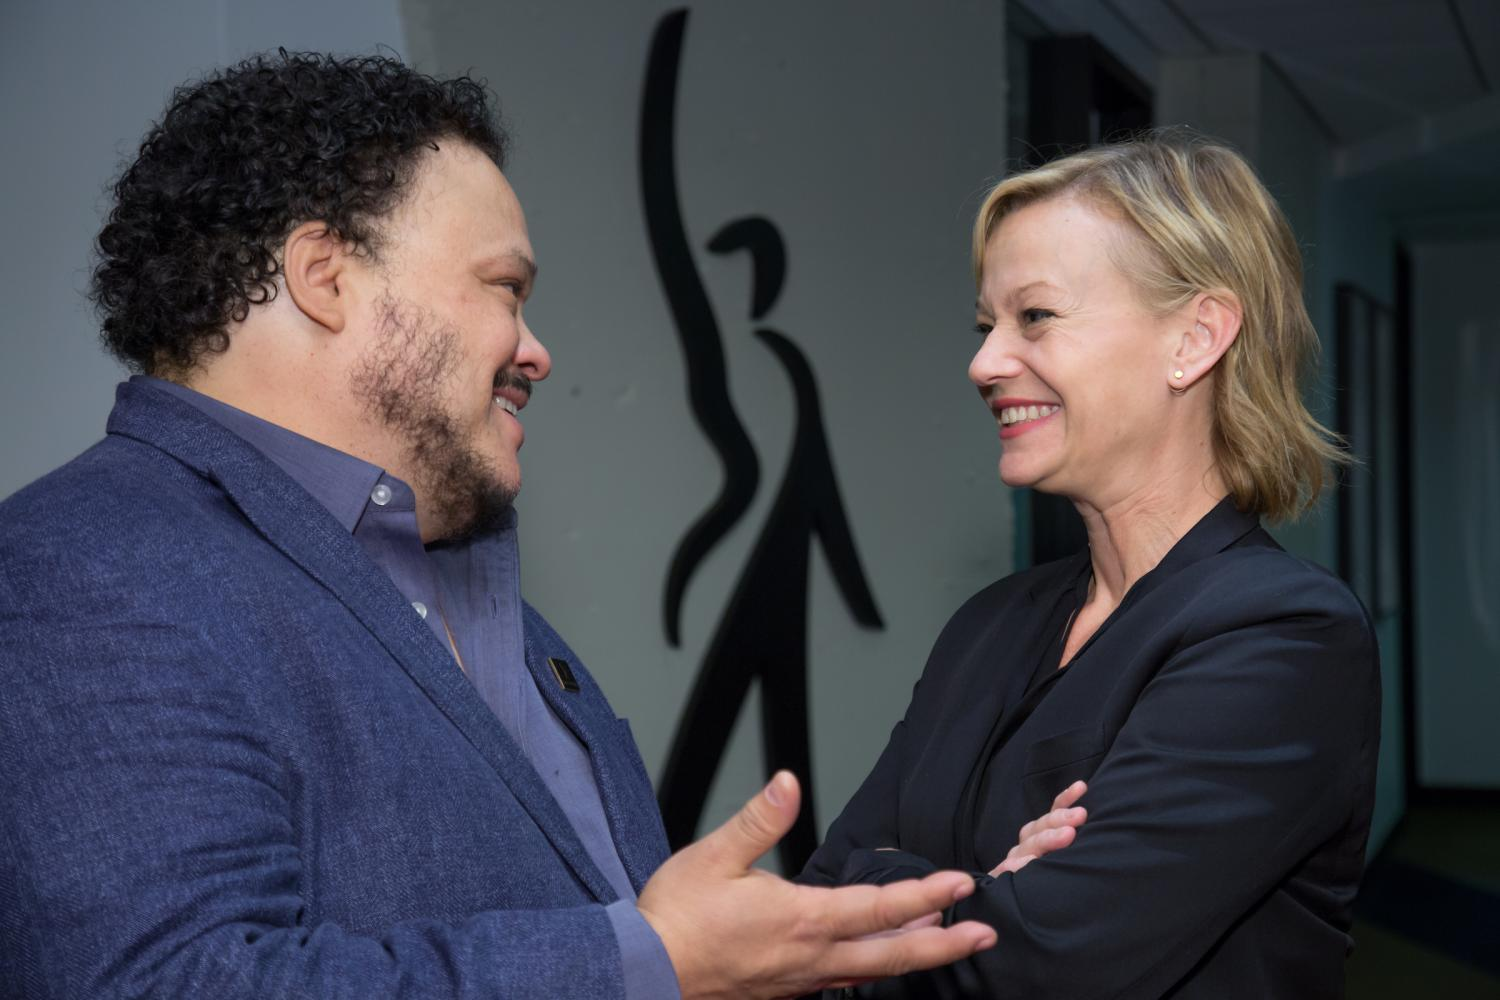 National Board member Adrian Martinez and Vice President, Actor Performers Samantha Mathis catch up.